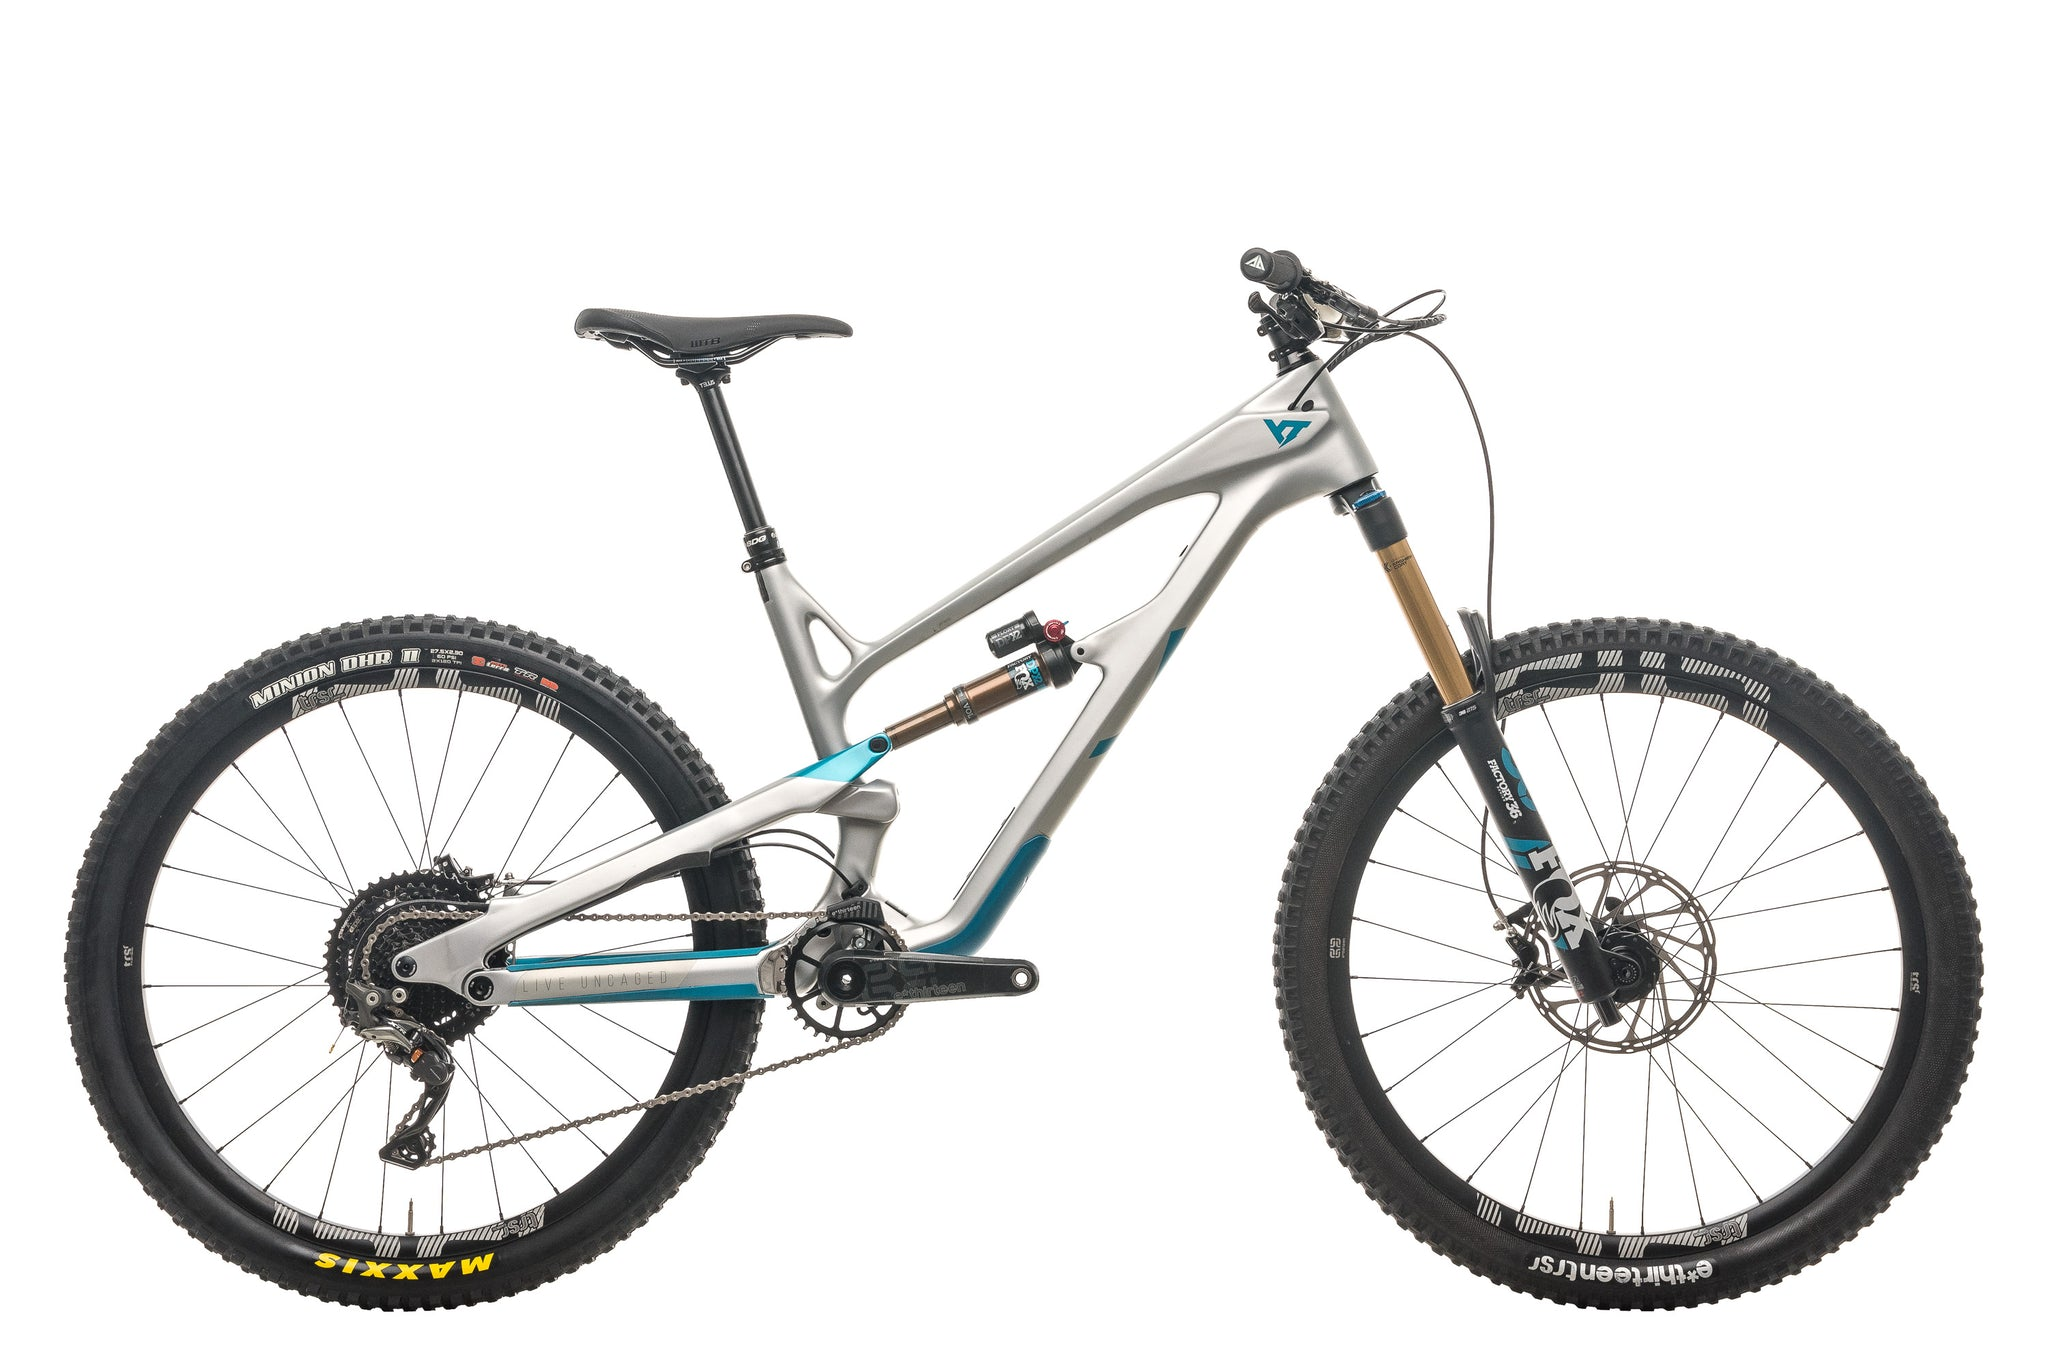 YT Jeffsy 27.5 mountain bike